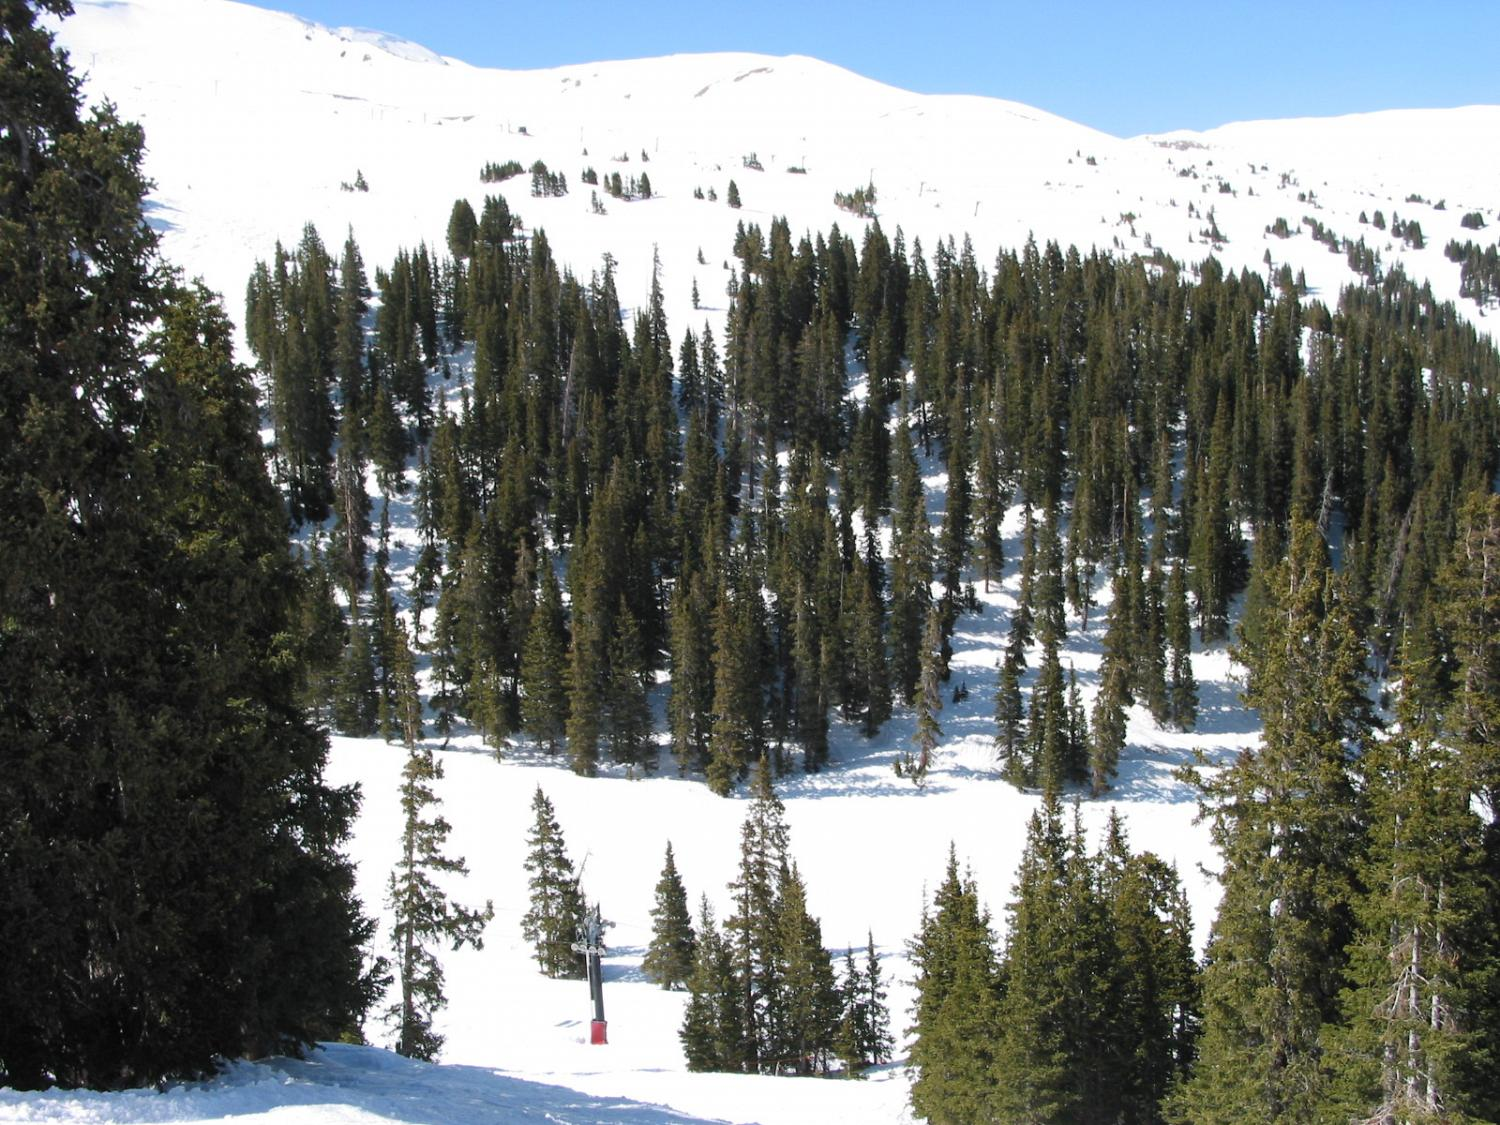 Tomahawk Ski Trail - Chair 4 and Chair 9 in Background